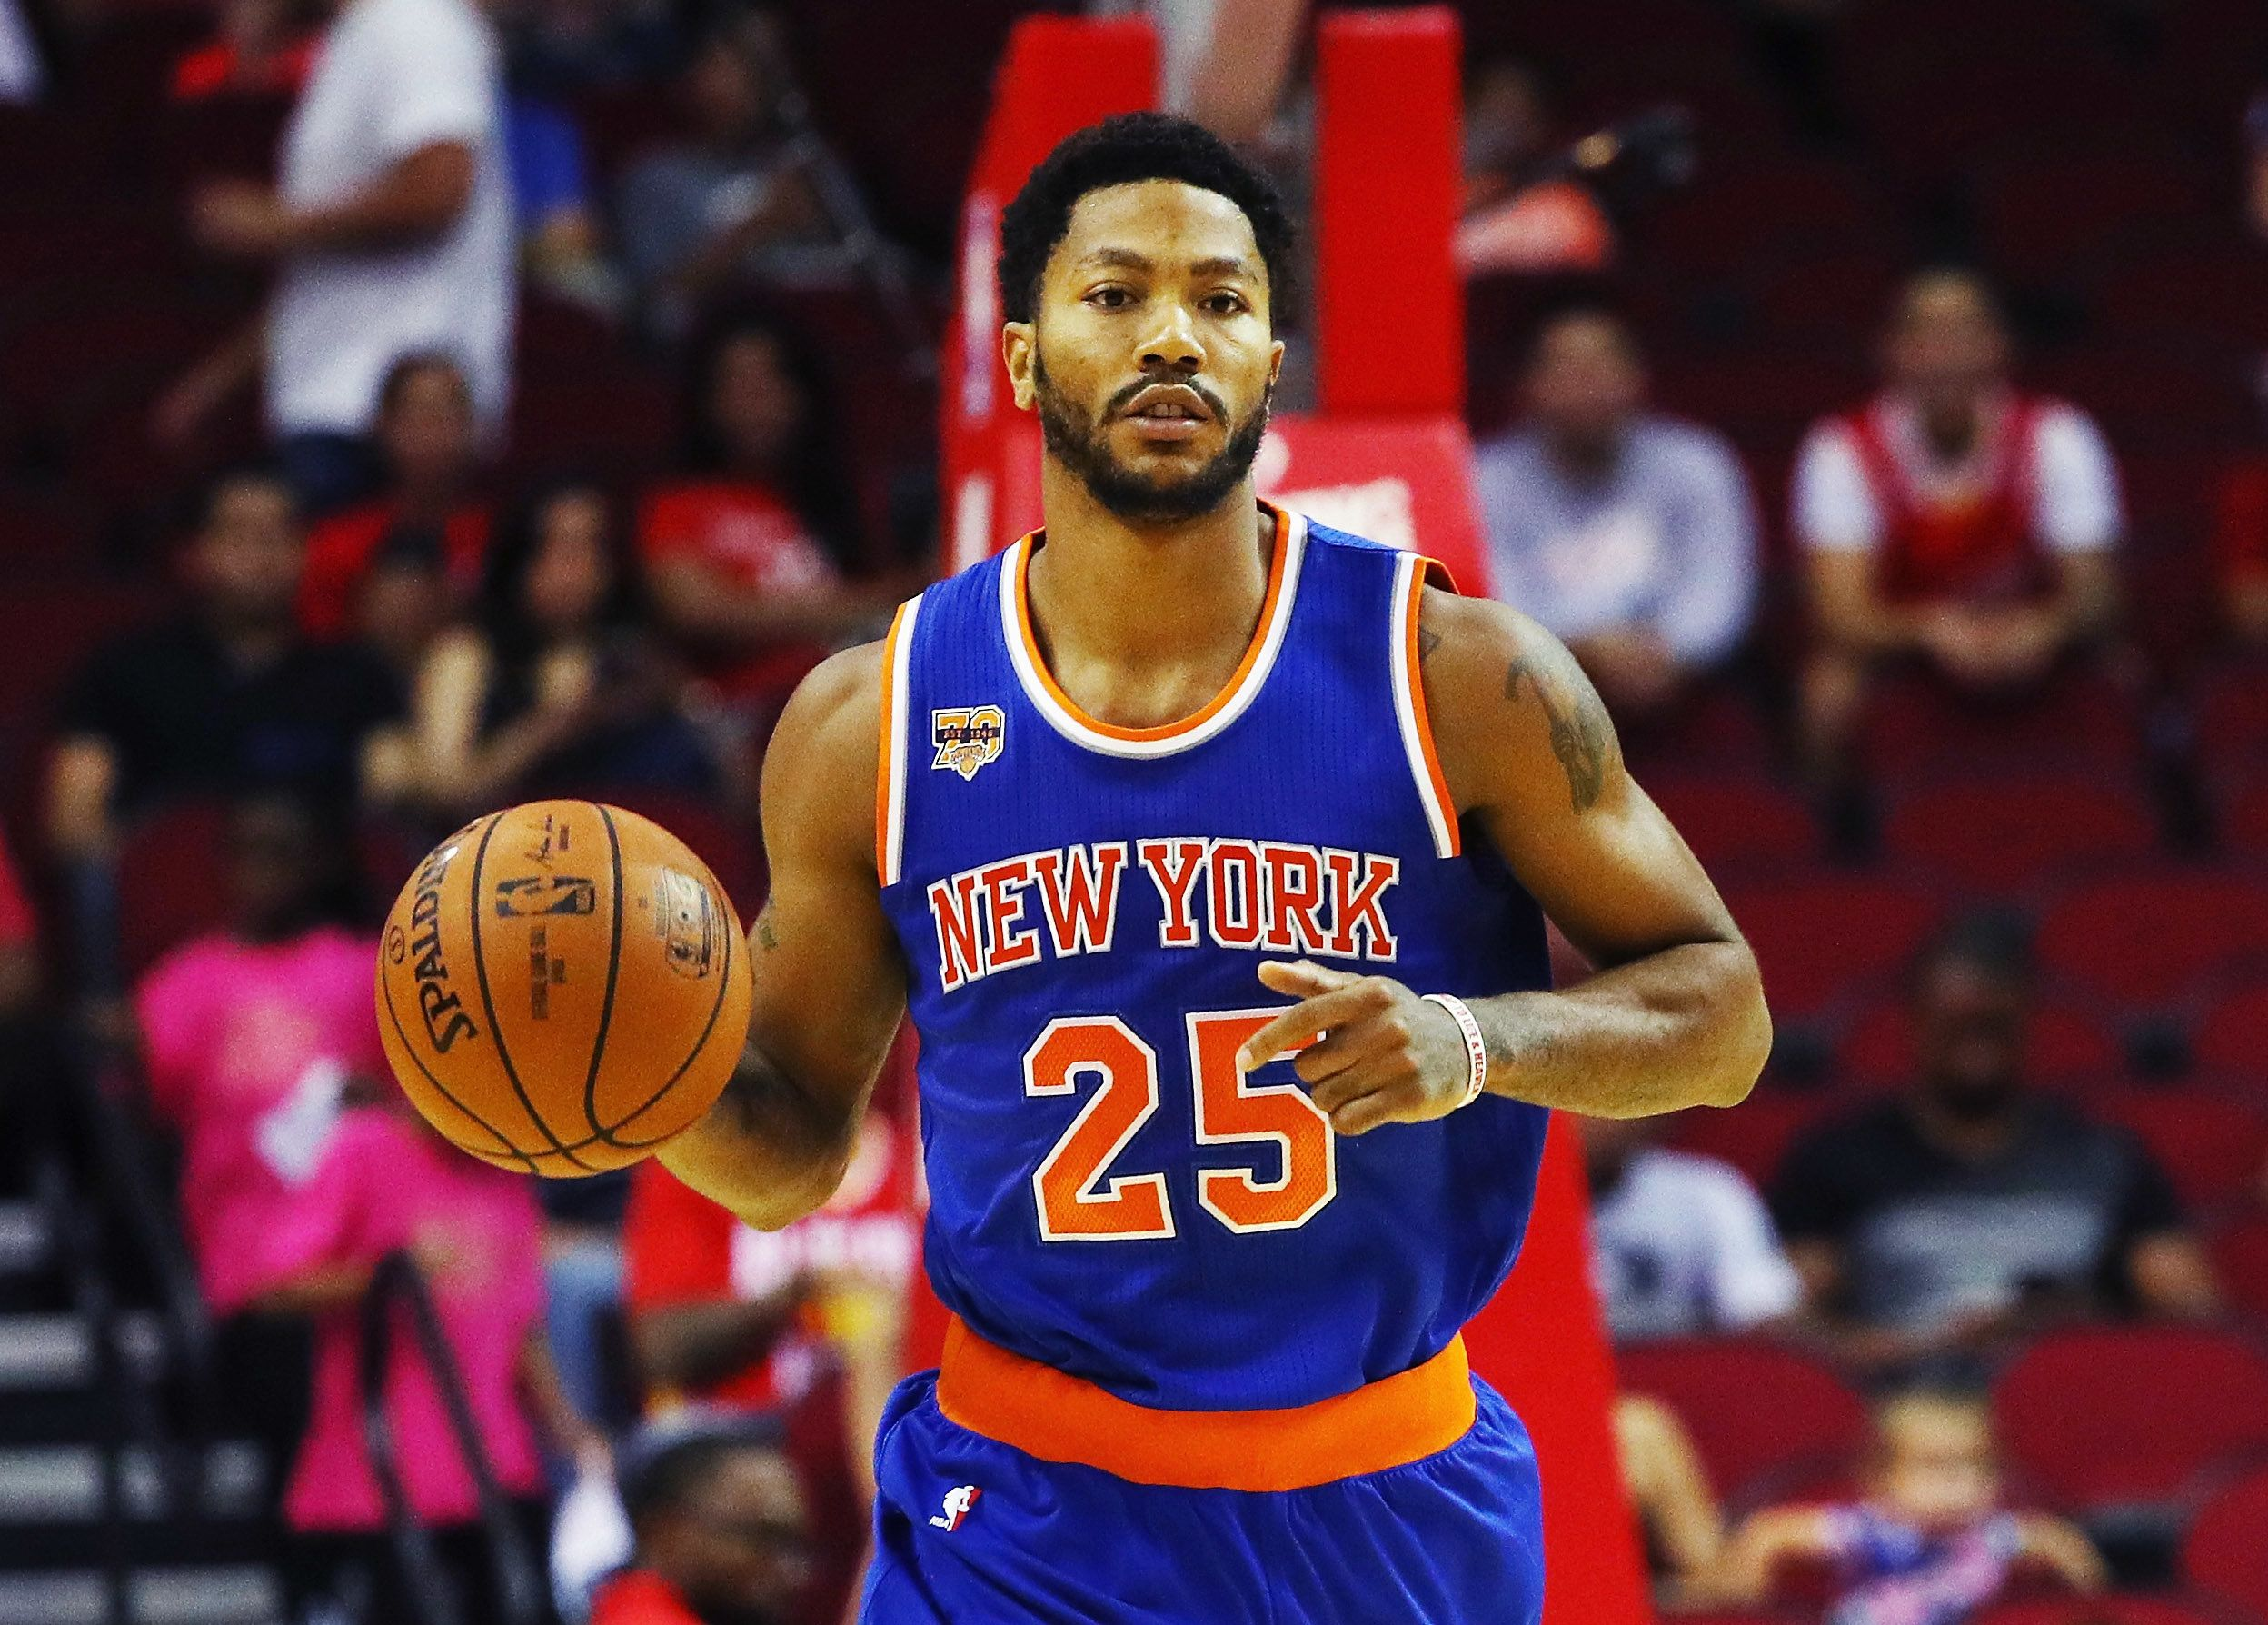 HOUSTON, TX - OCTOBER 04:  Derrick Rose #25 of the New York Knicks takes the basketball up the court during their game against the Houston Rockets at the Toyota Center on October 4, 2016 in Houston, Texas. NOTE TO USER: User expressly acknowledges and agrees that, by downloading and or using this Photograph, user is consenting to the terms and conditions of the Getty Images License Agreement.  (Photo by Scott Halleran/Getty Images)